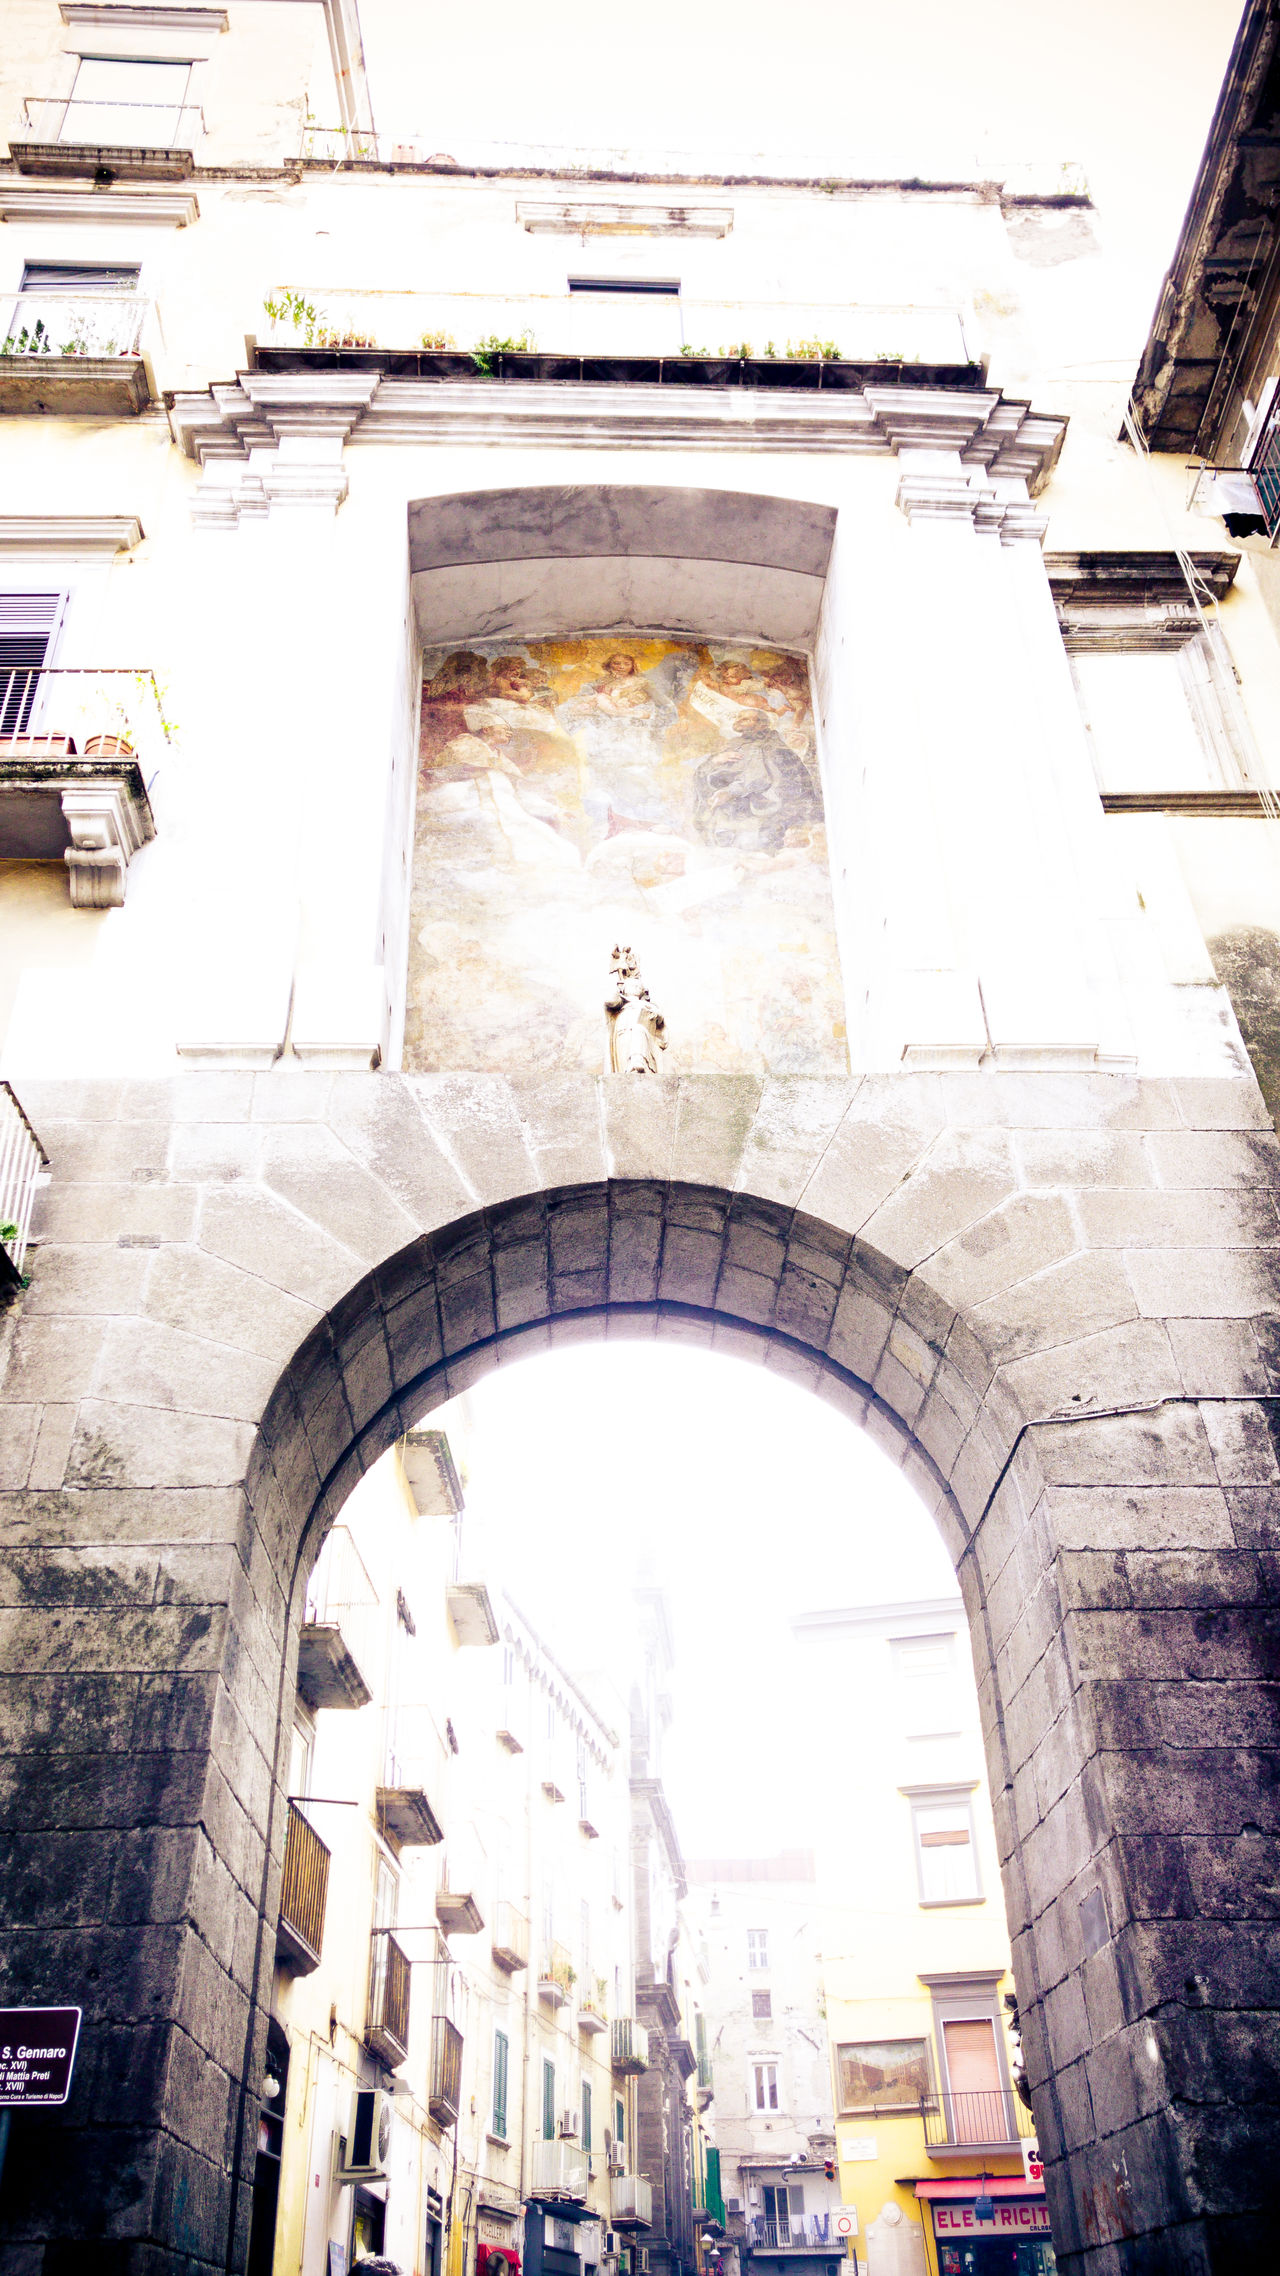 Porta San Gennaro in Napoli, Italy Architecture Building Exterior Built Structure Day Low Angle View Naples, Italy Napoli No People Outdoors Porta San Gennaro